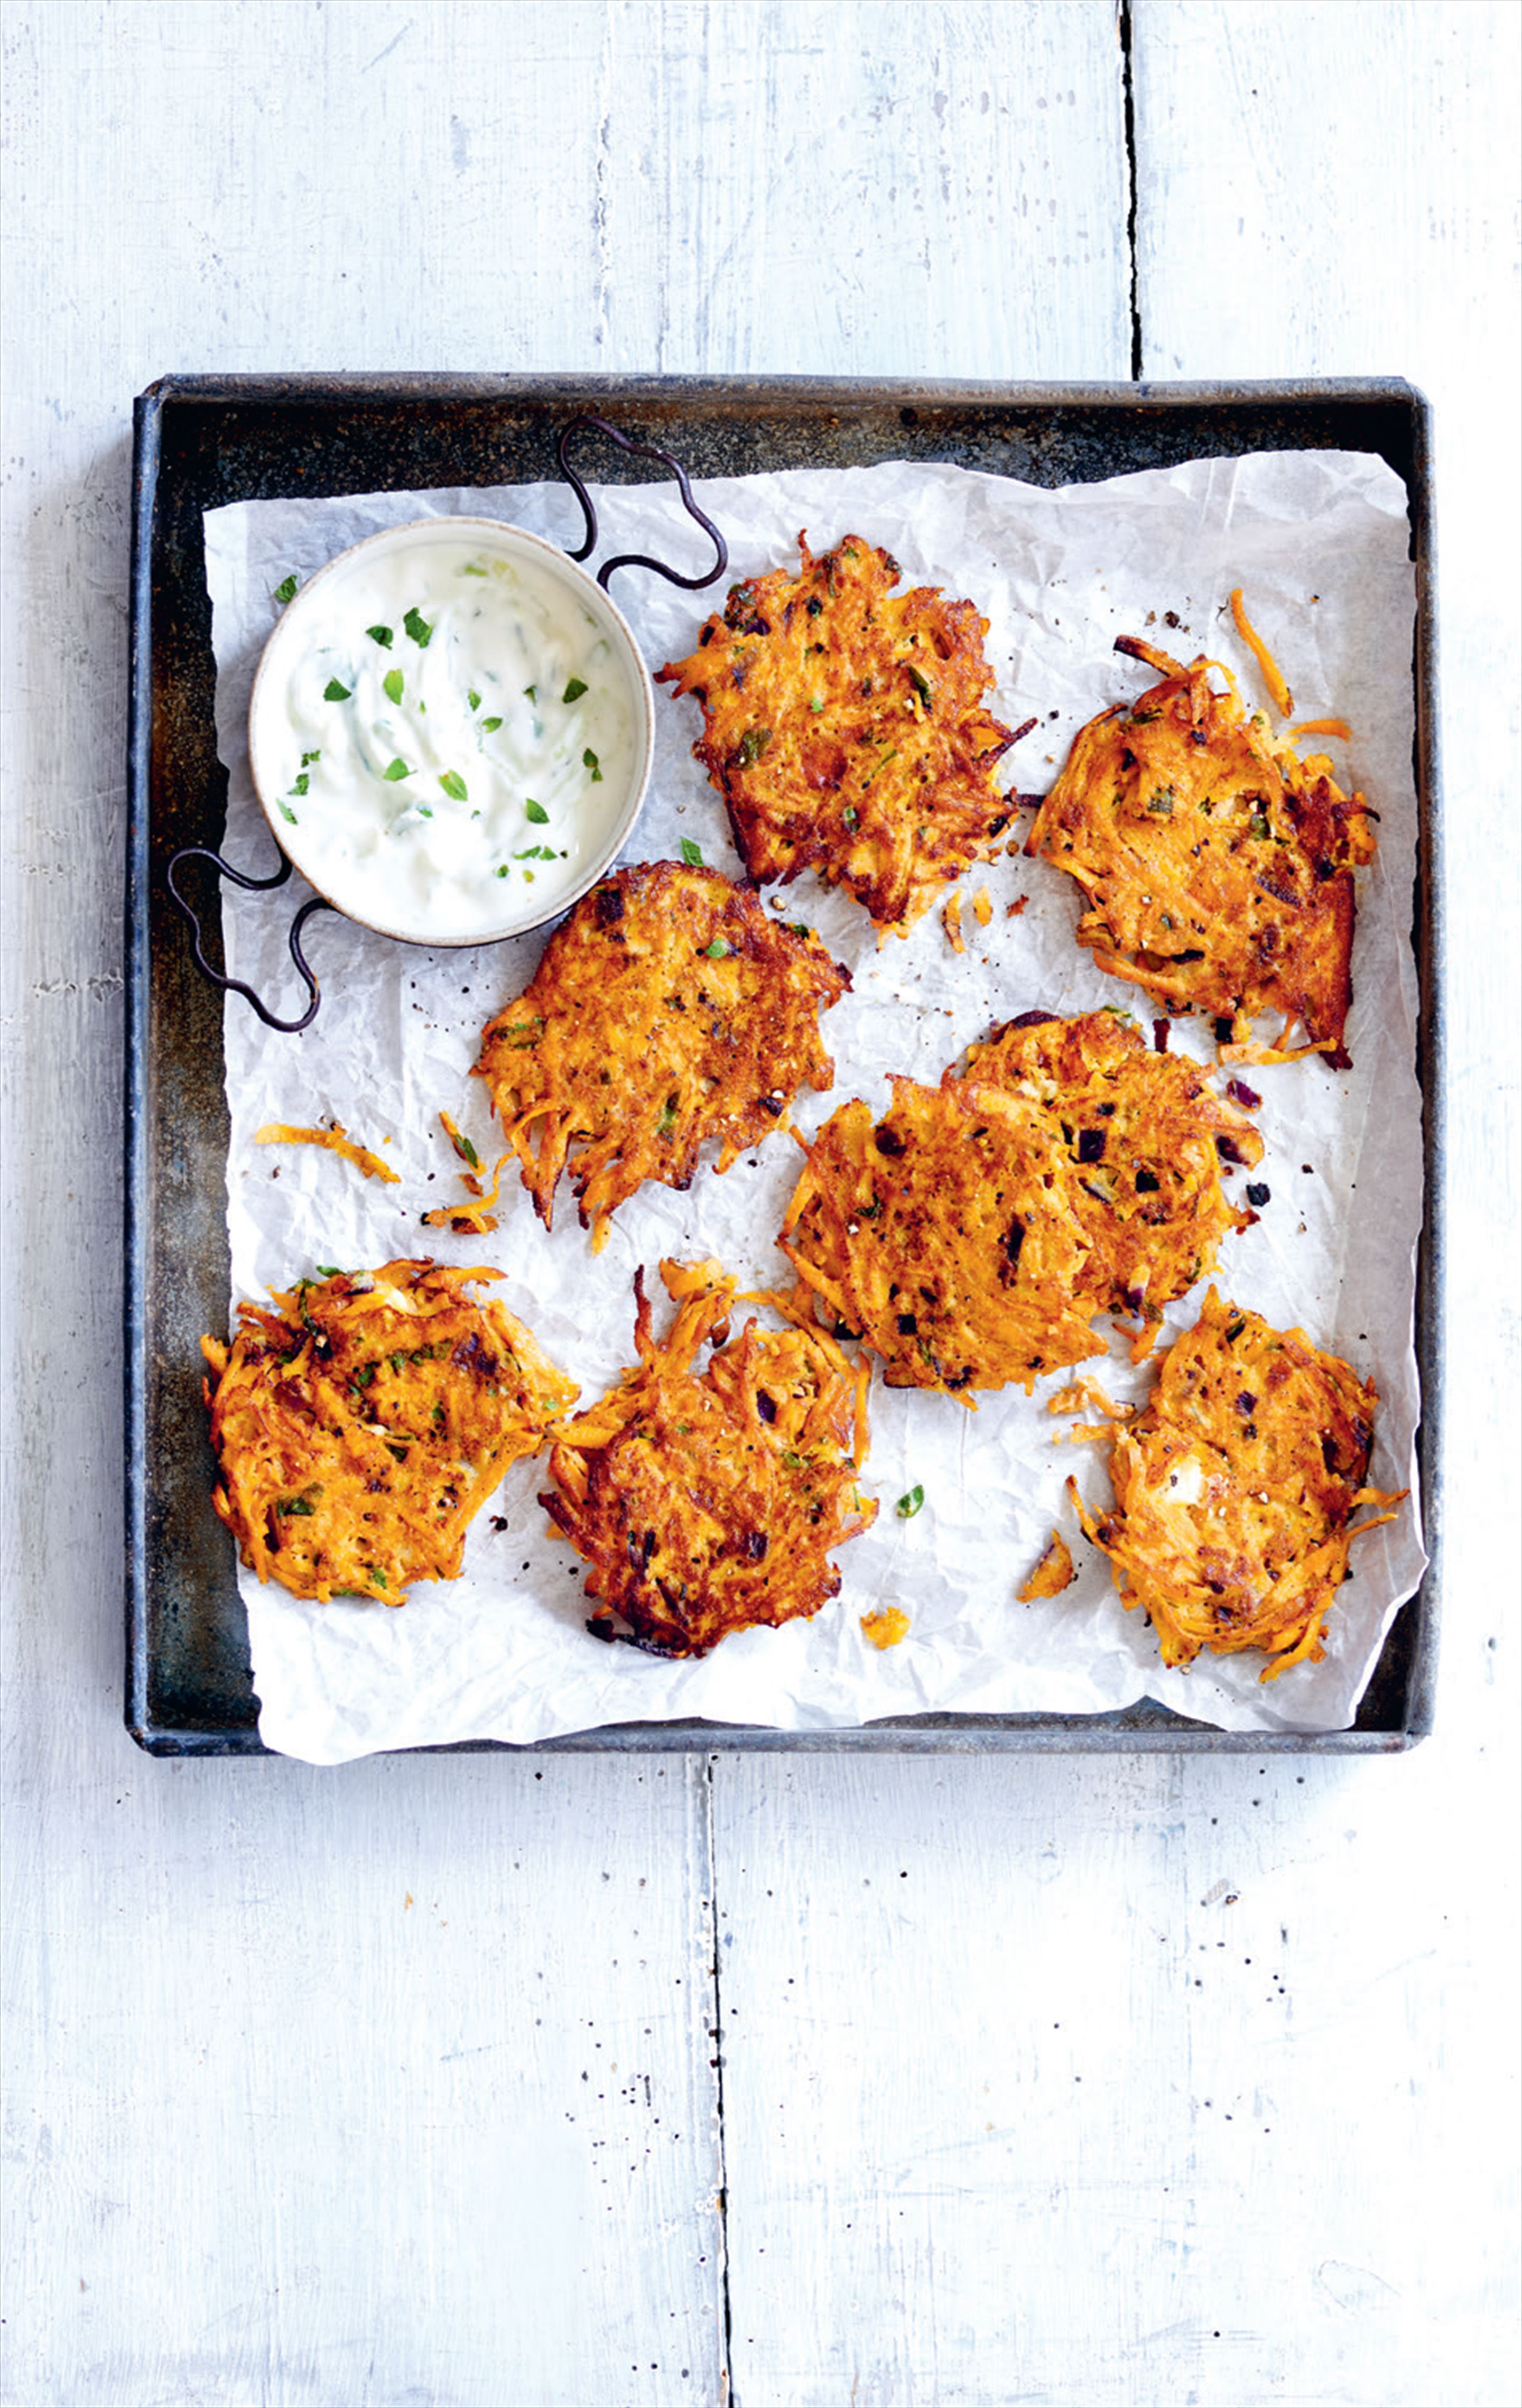 Carrot, sweet potato and feta fritters with tzatziki